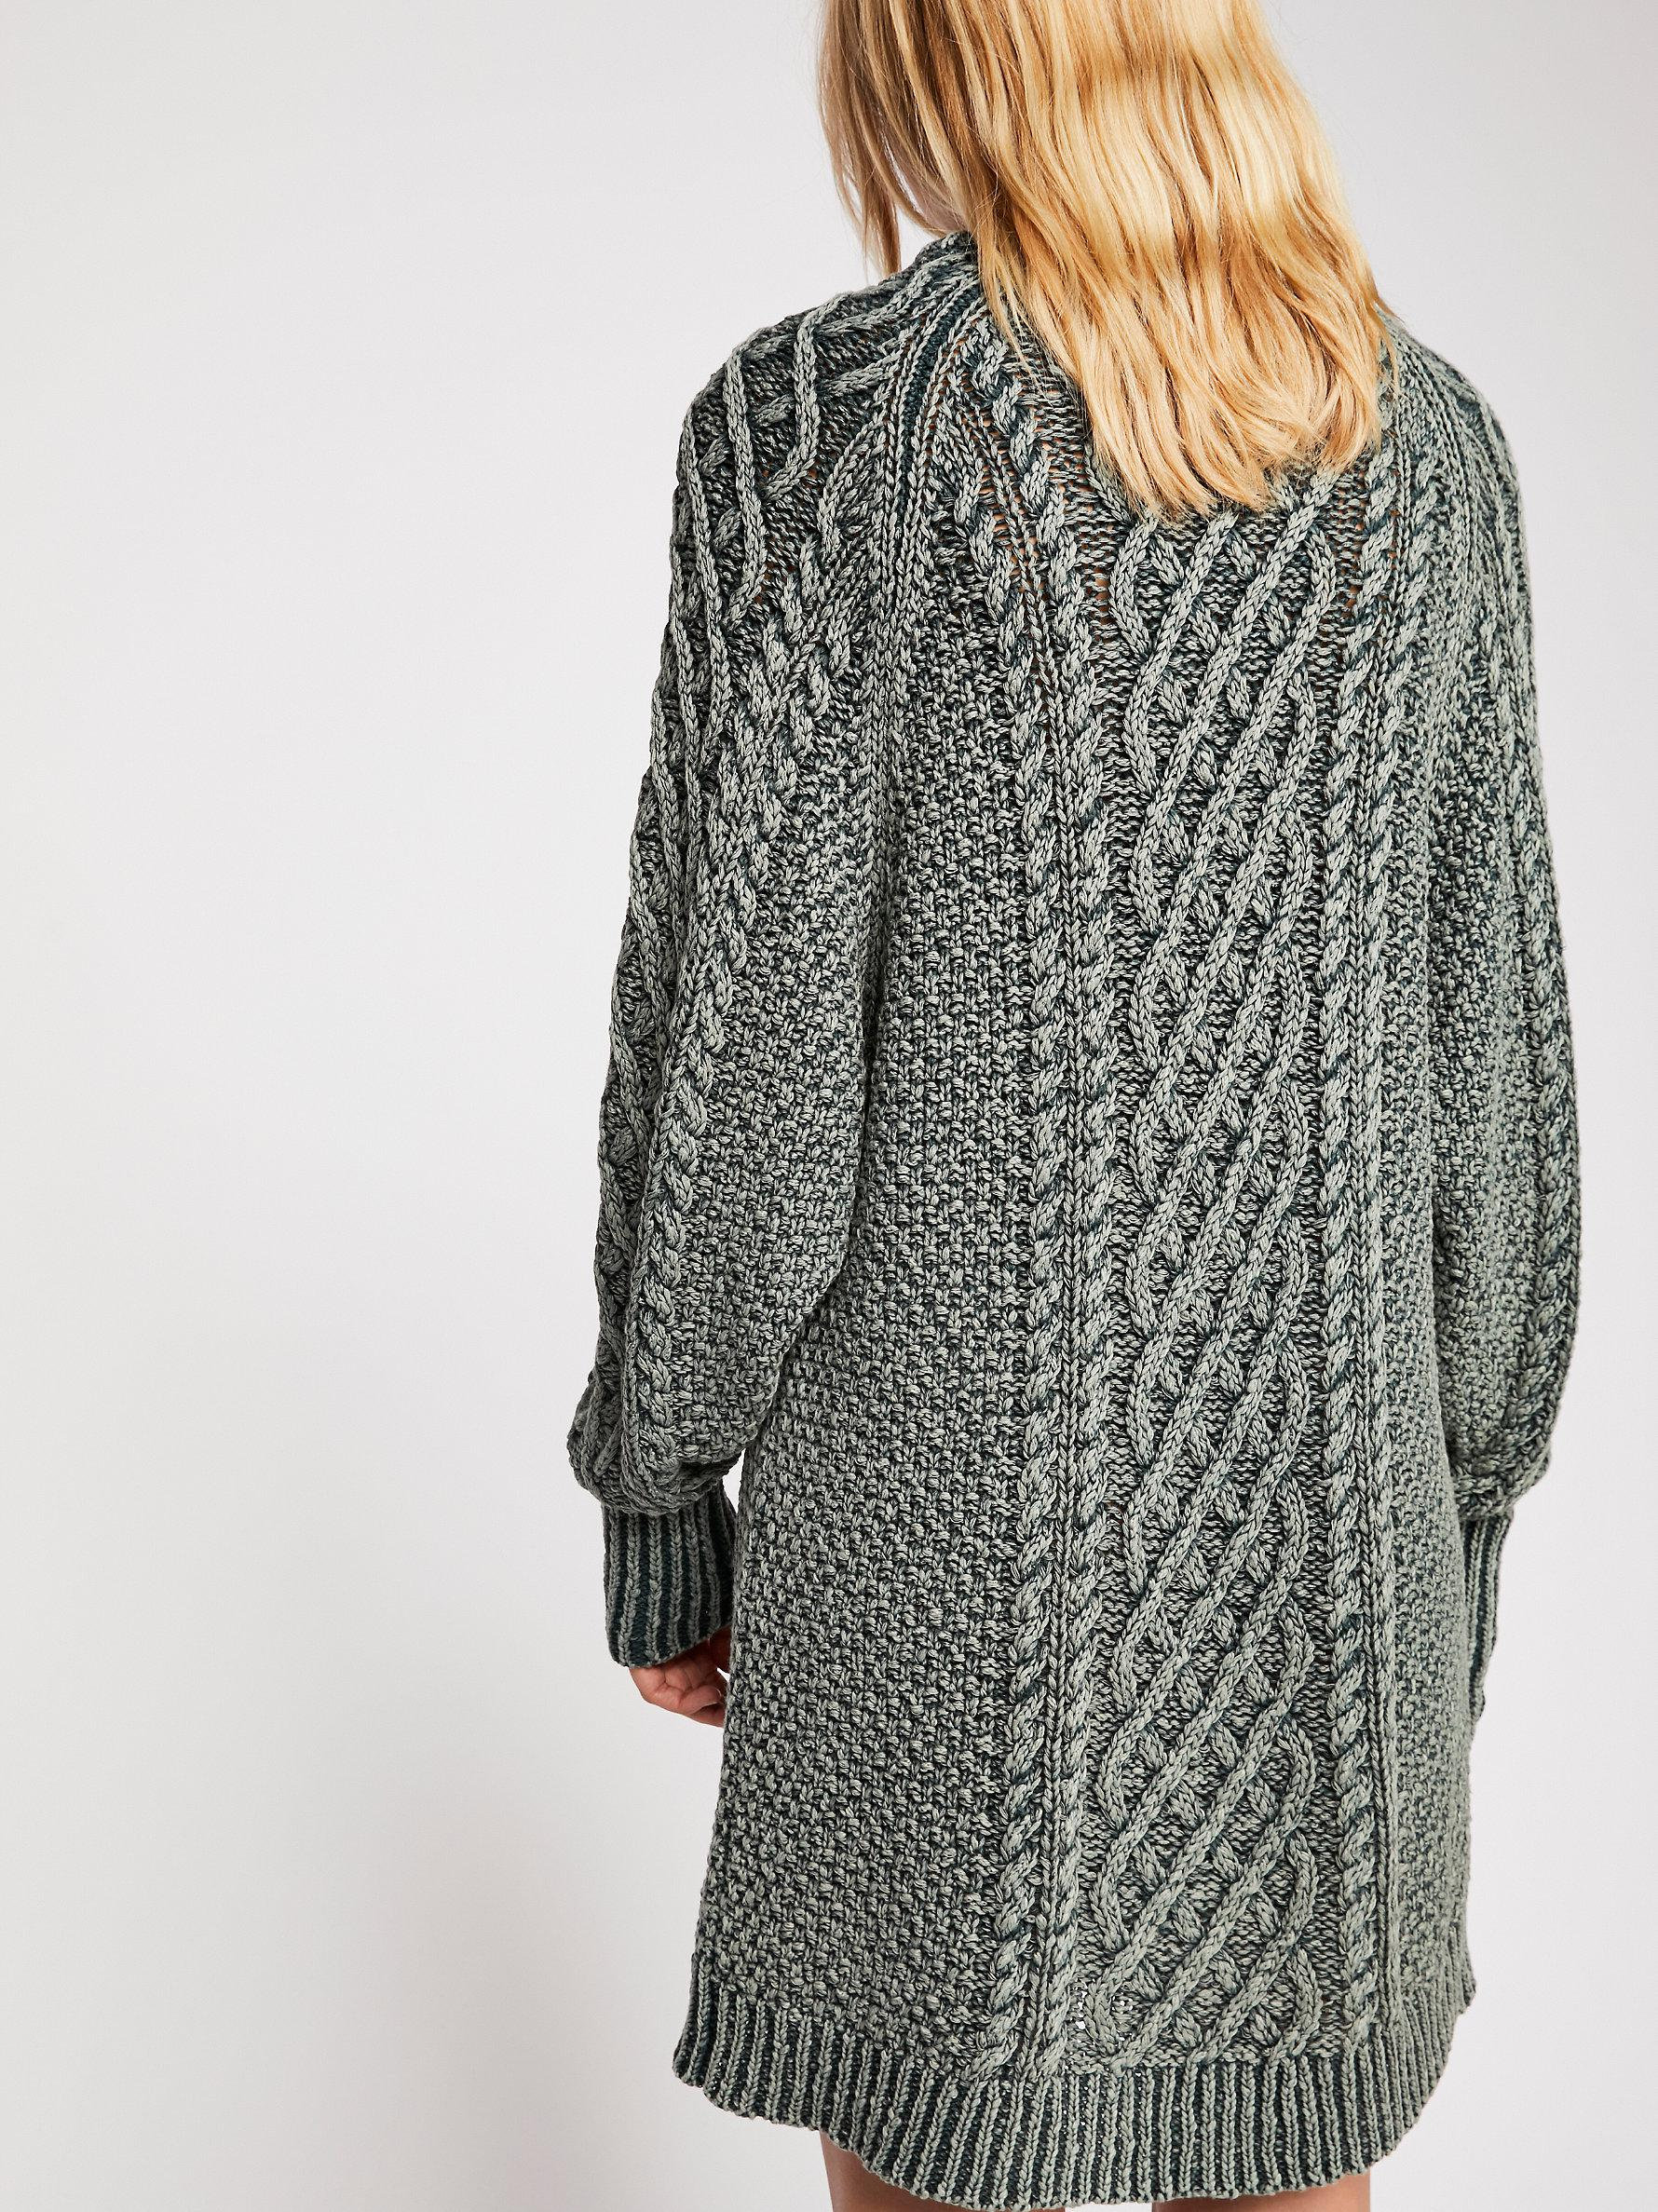 bd17976e5cb5d Free People On A Boat Sweater Dress in Gray - Lyst